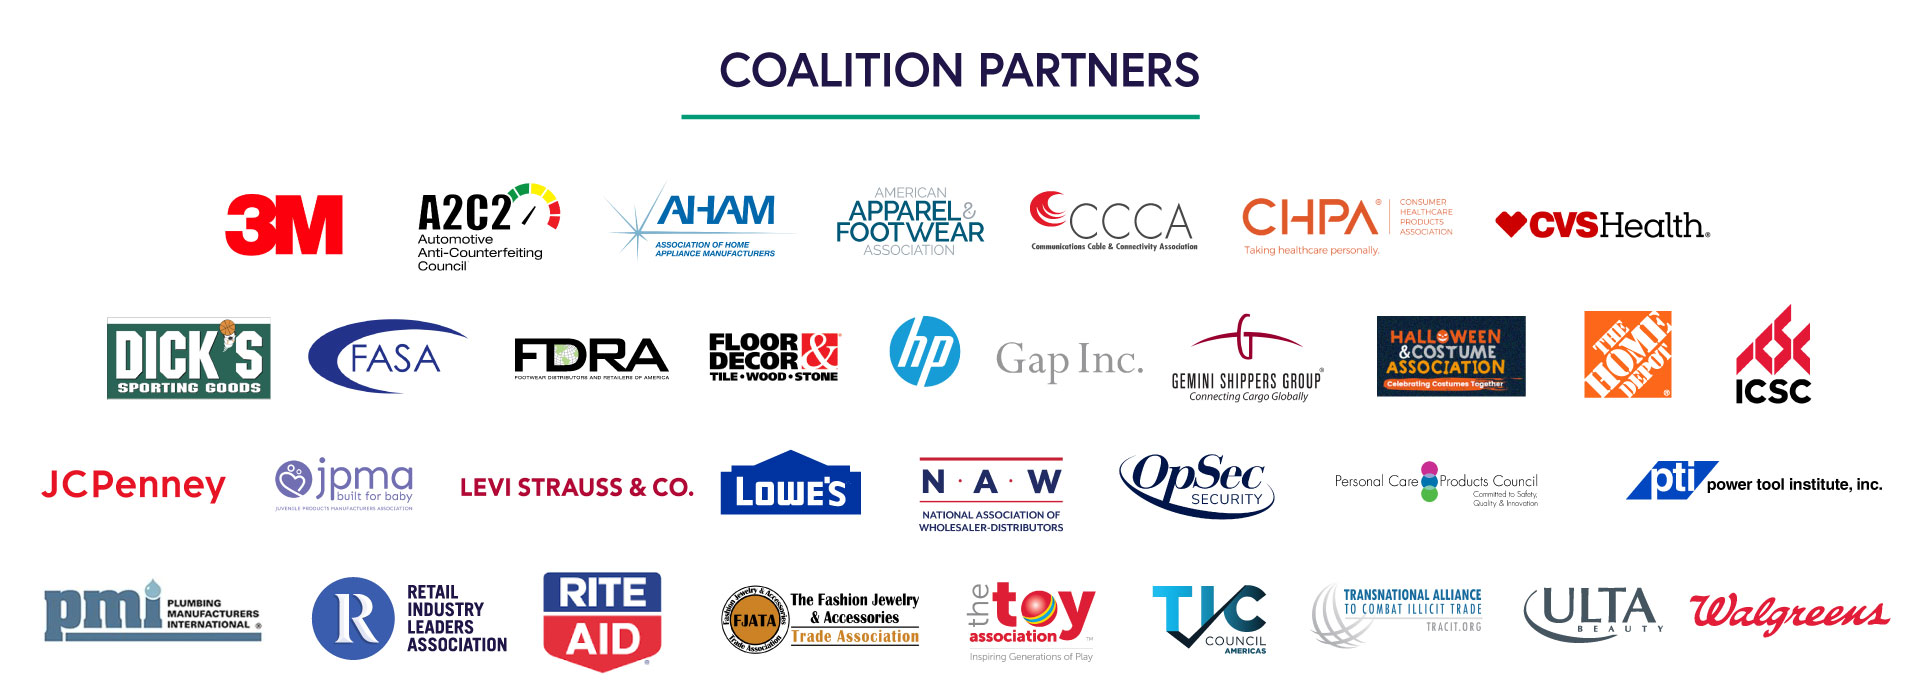 Buy Safe America Coalition Partners